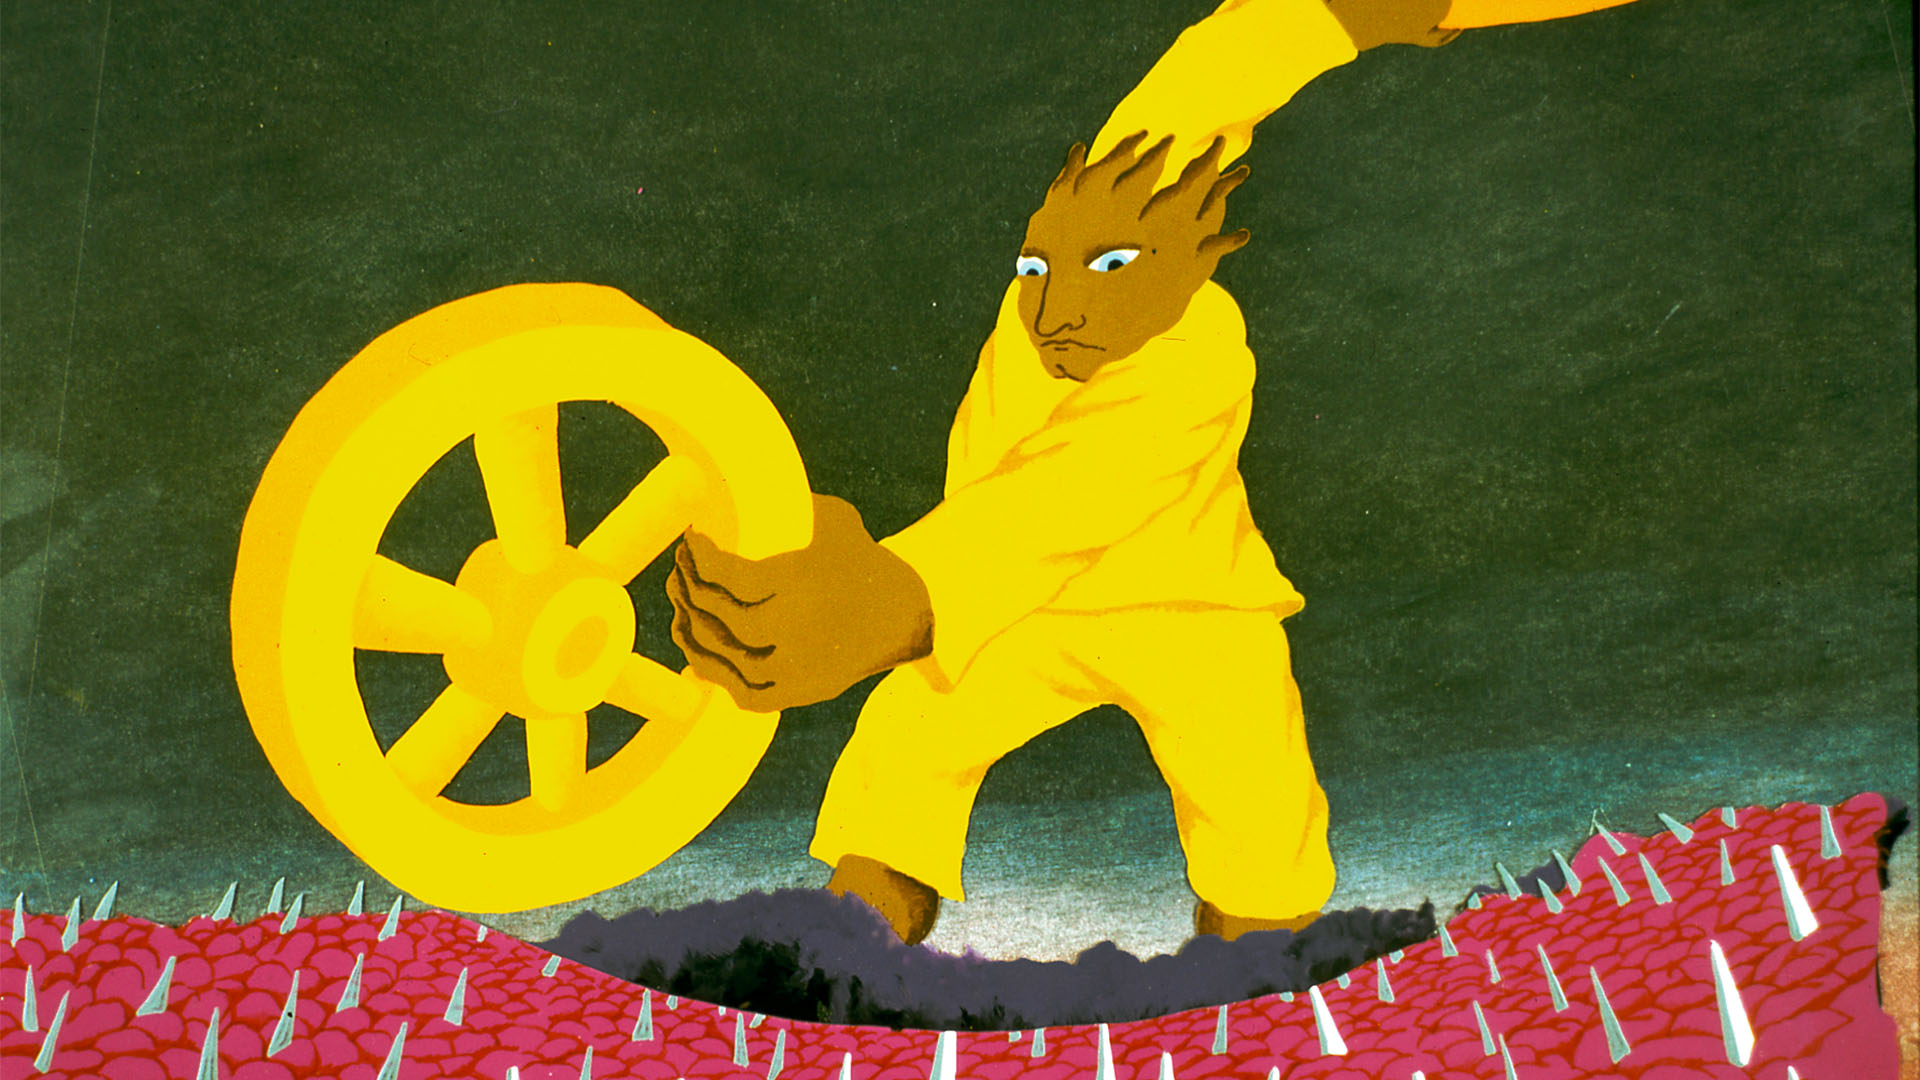 101 Estonian Films: Animation